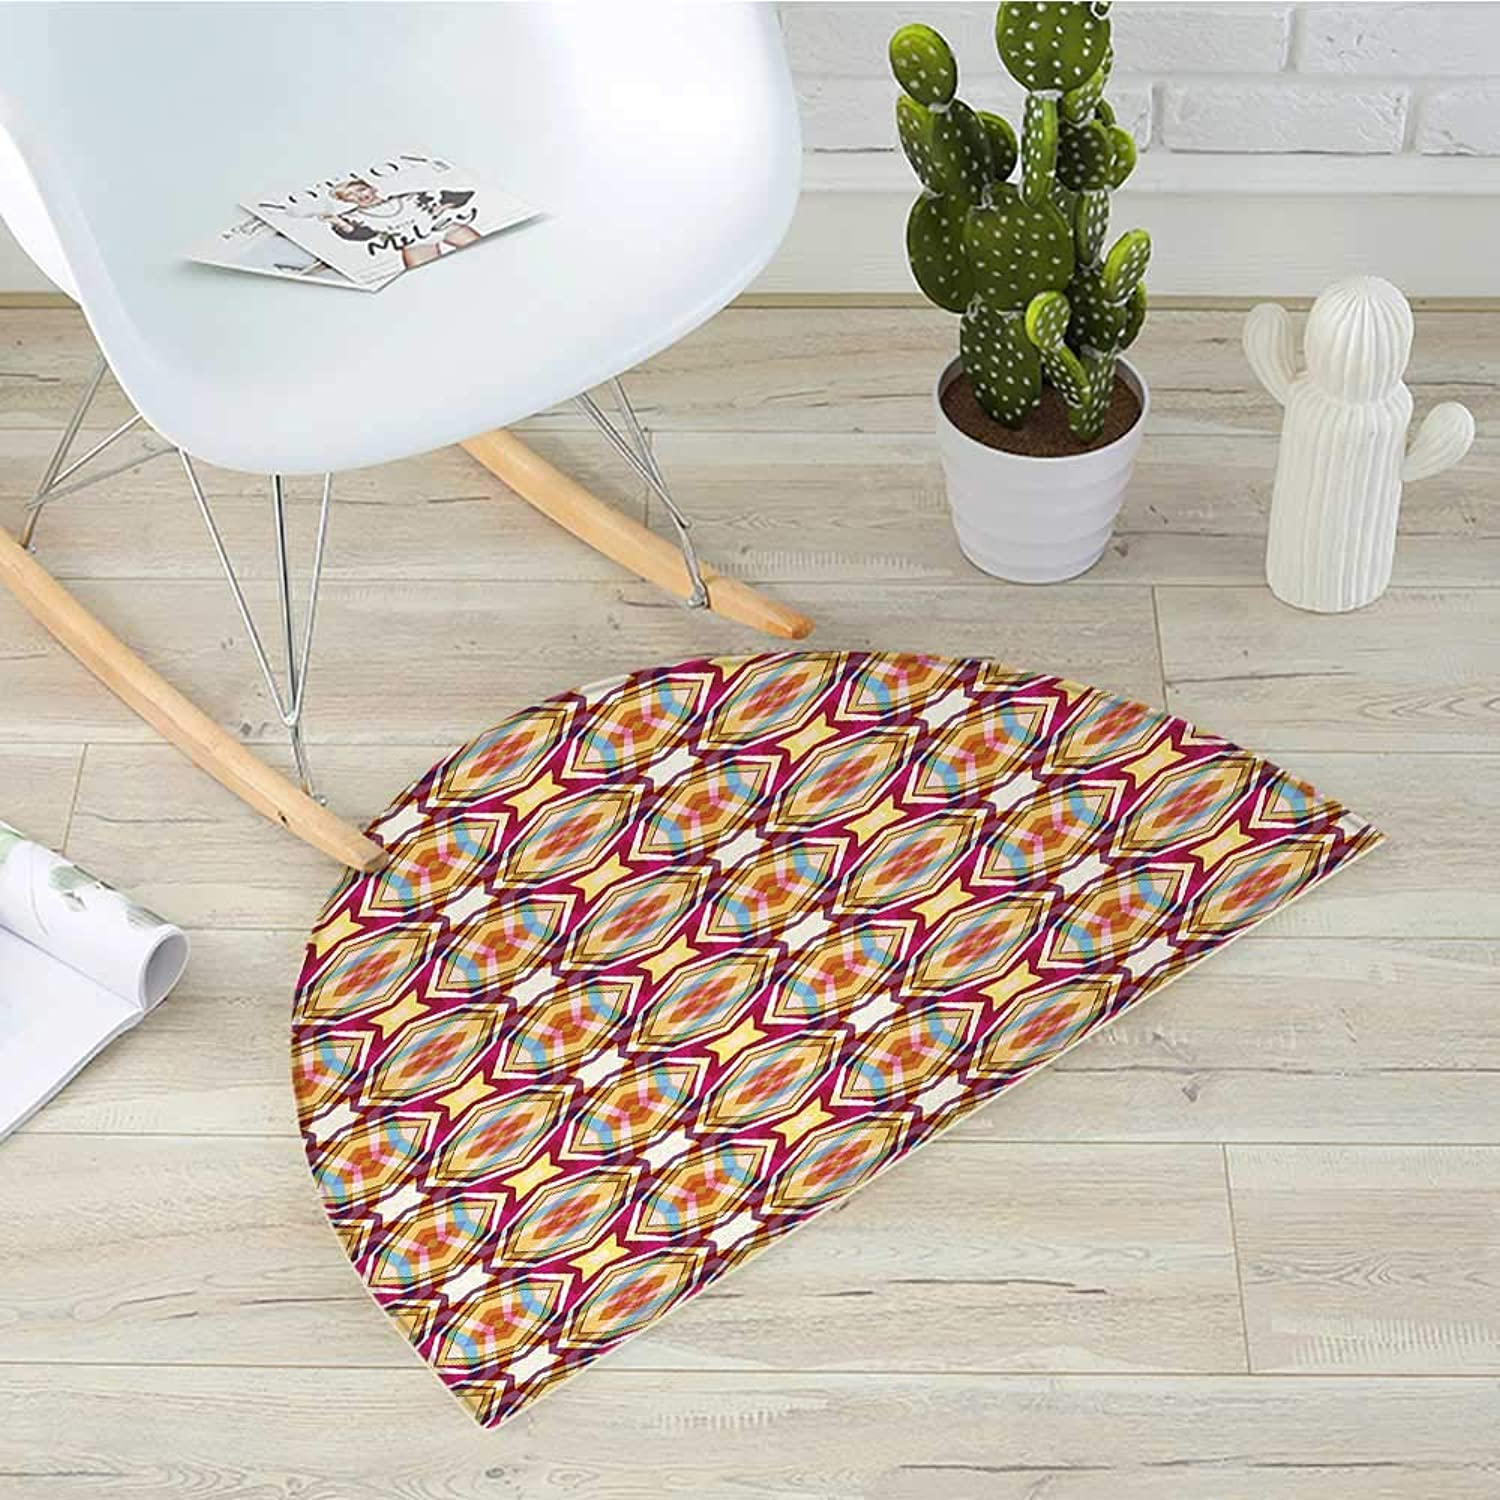 Abstract Semicircular CushionRetro Modern Ornament with Vibrant colors Star Figures Stripy Stylized Pattern Entry Door Mat H 39.3  xD 59  Multicolor